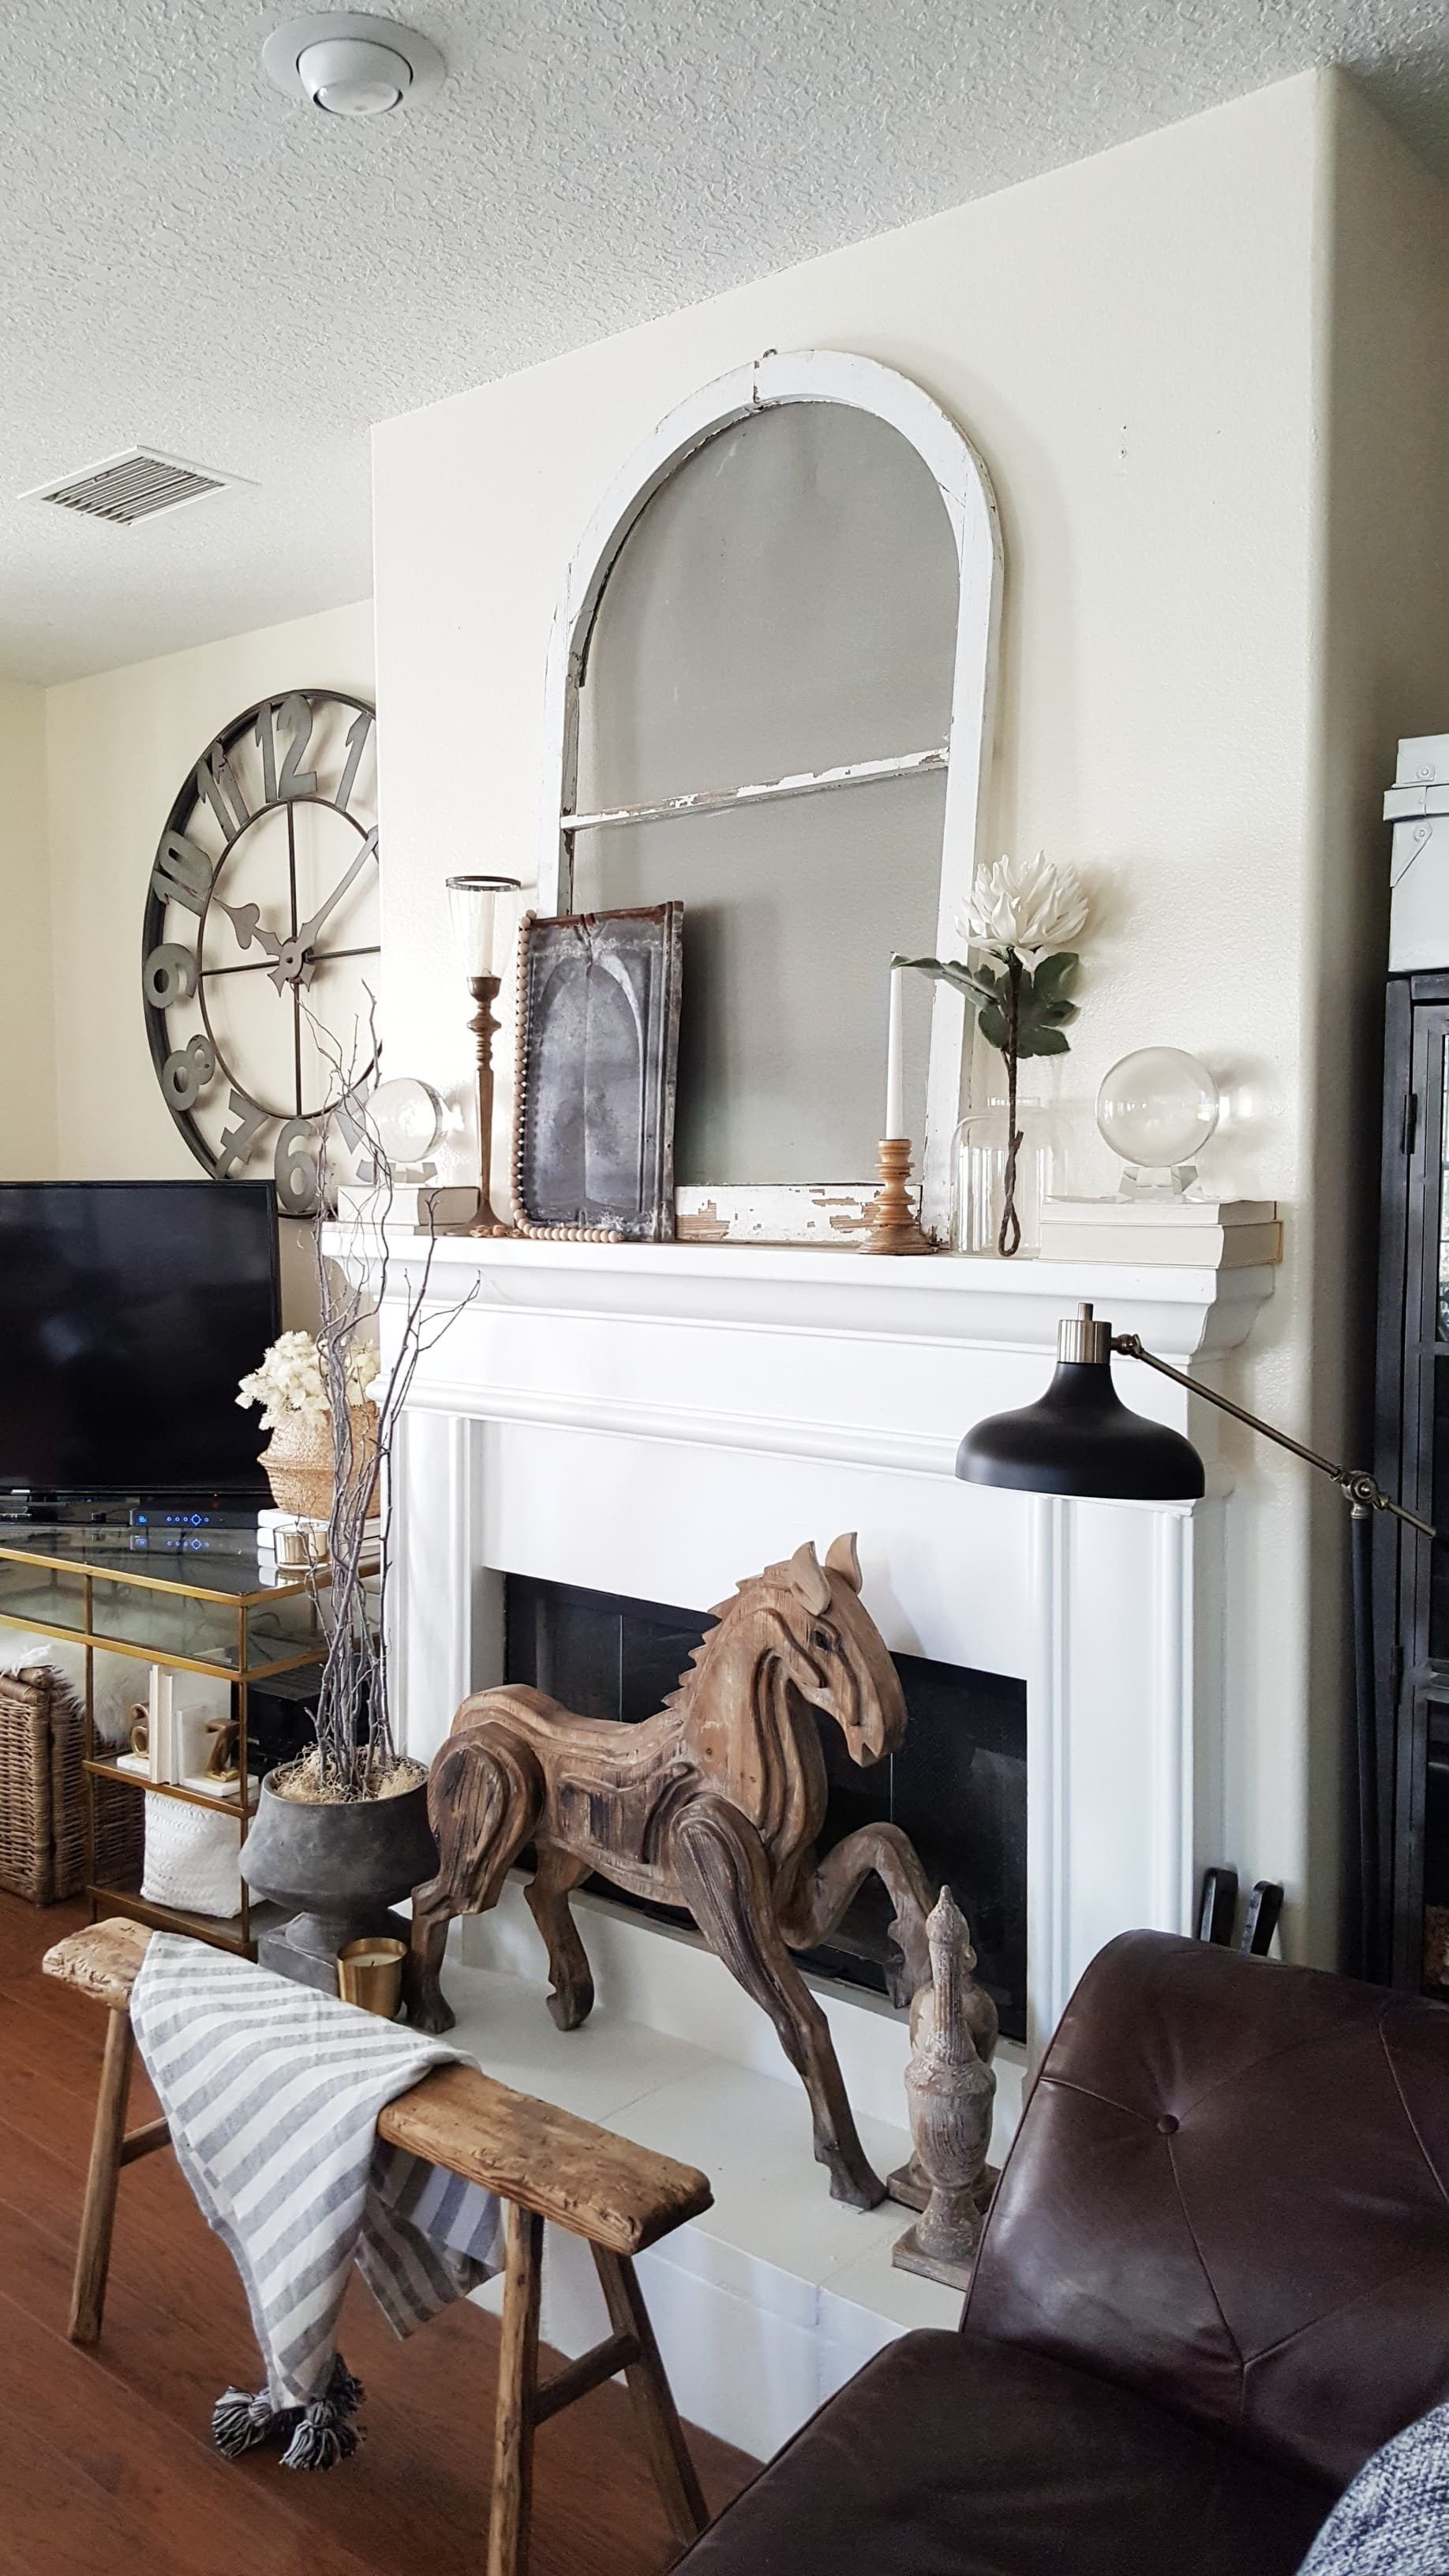 FALL-ing for Vintage and Modern Decor - Black and White Living Room ...